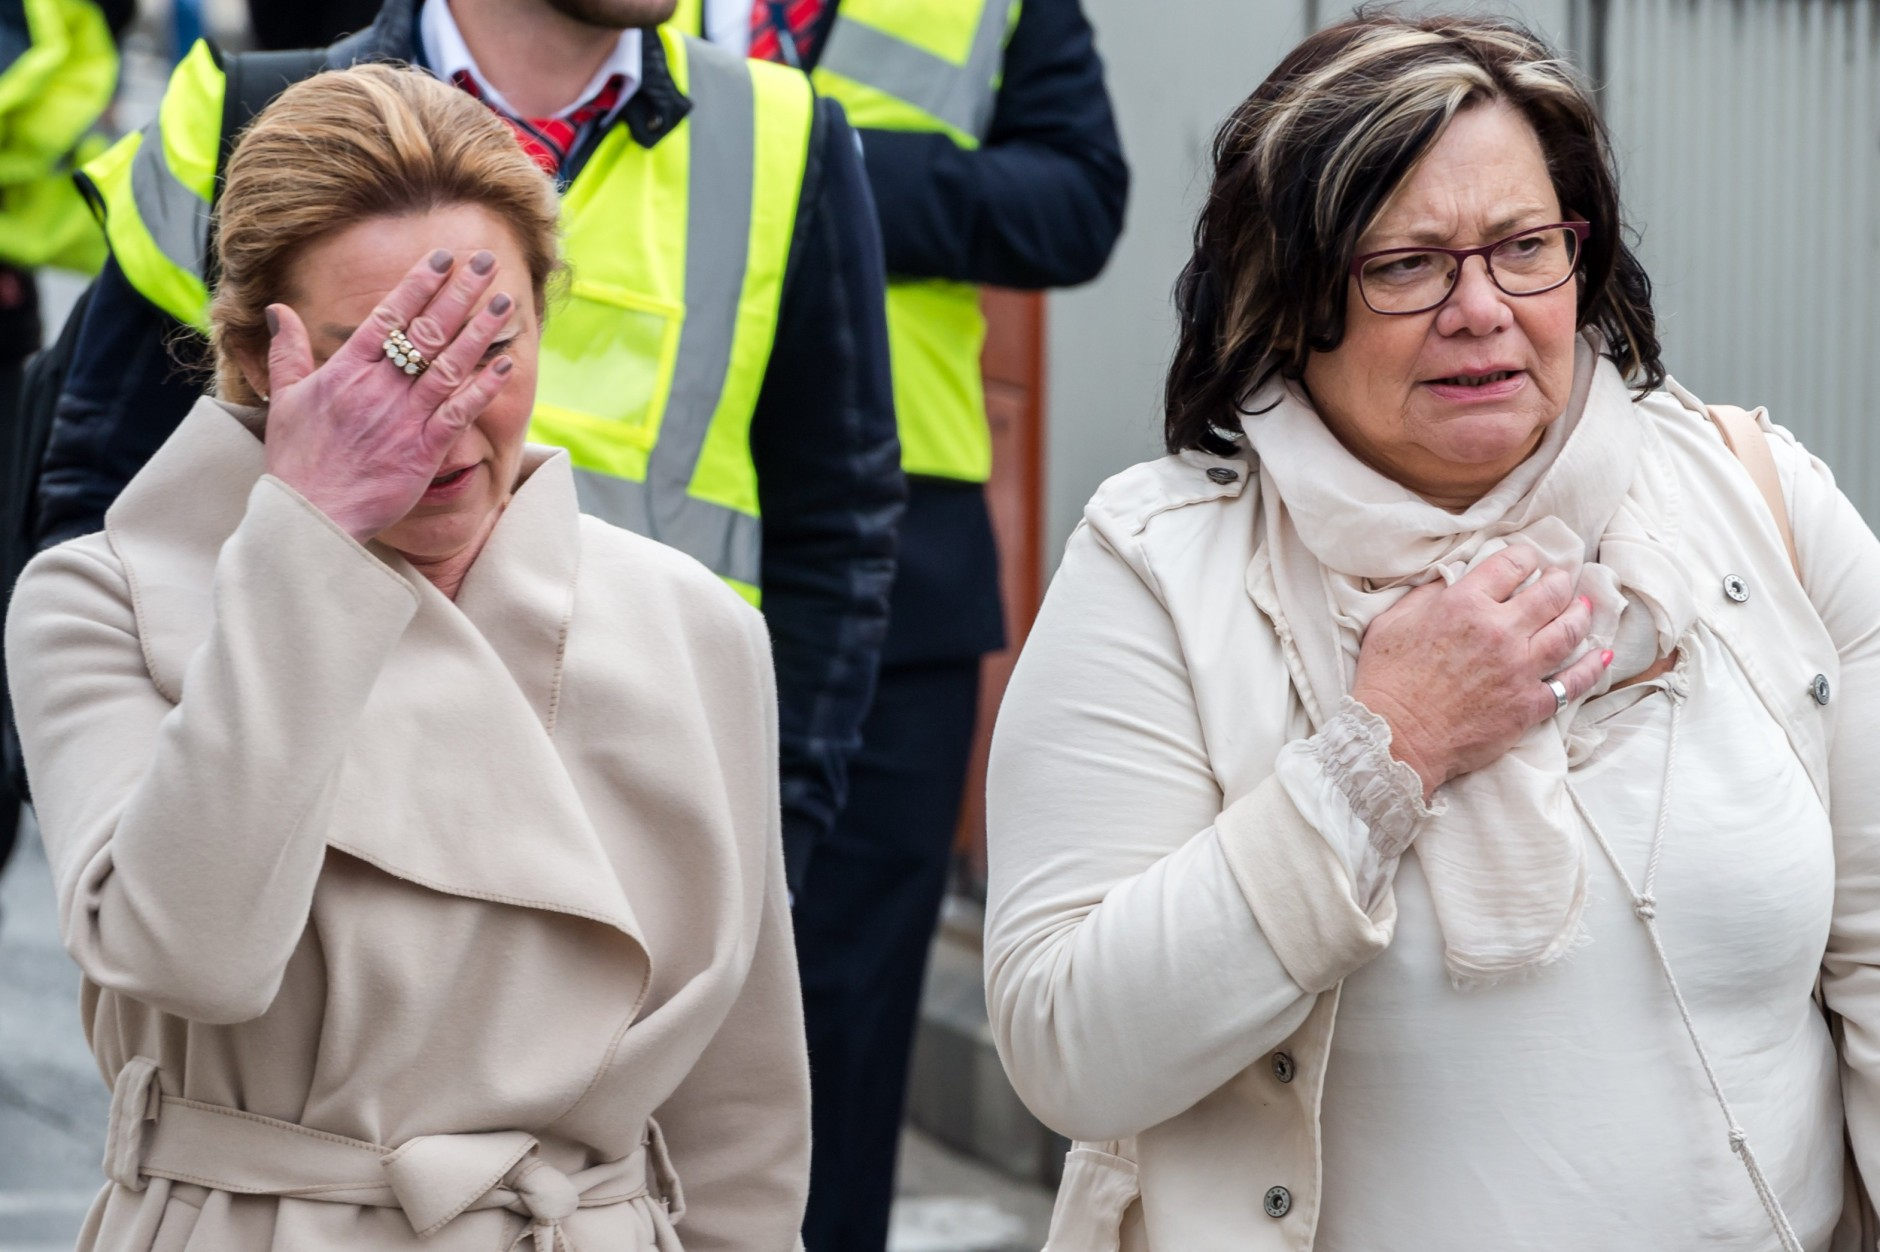 People react as they walk away from Brussels airport after explosions rocked the facility in Brussels, Belgium Tuesday March 22, 2016.   Explosions rocked the Brussels airport and the subway system Tuesday, just days after the main suspect in the November Paris attacks was arrested in the city, police said. (AP Photo/Geert Vanden Wijngaert)